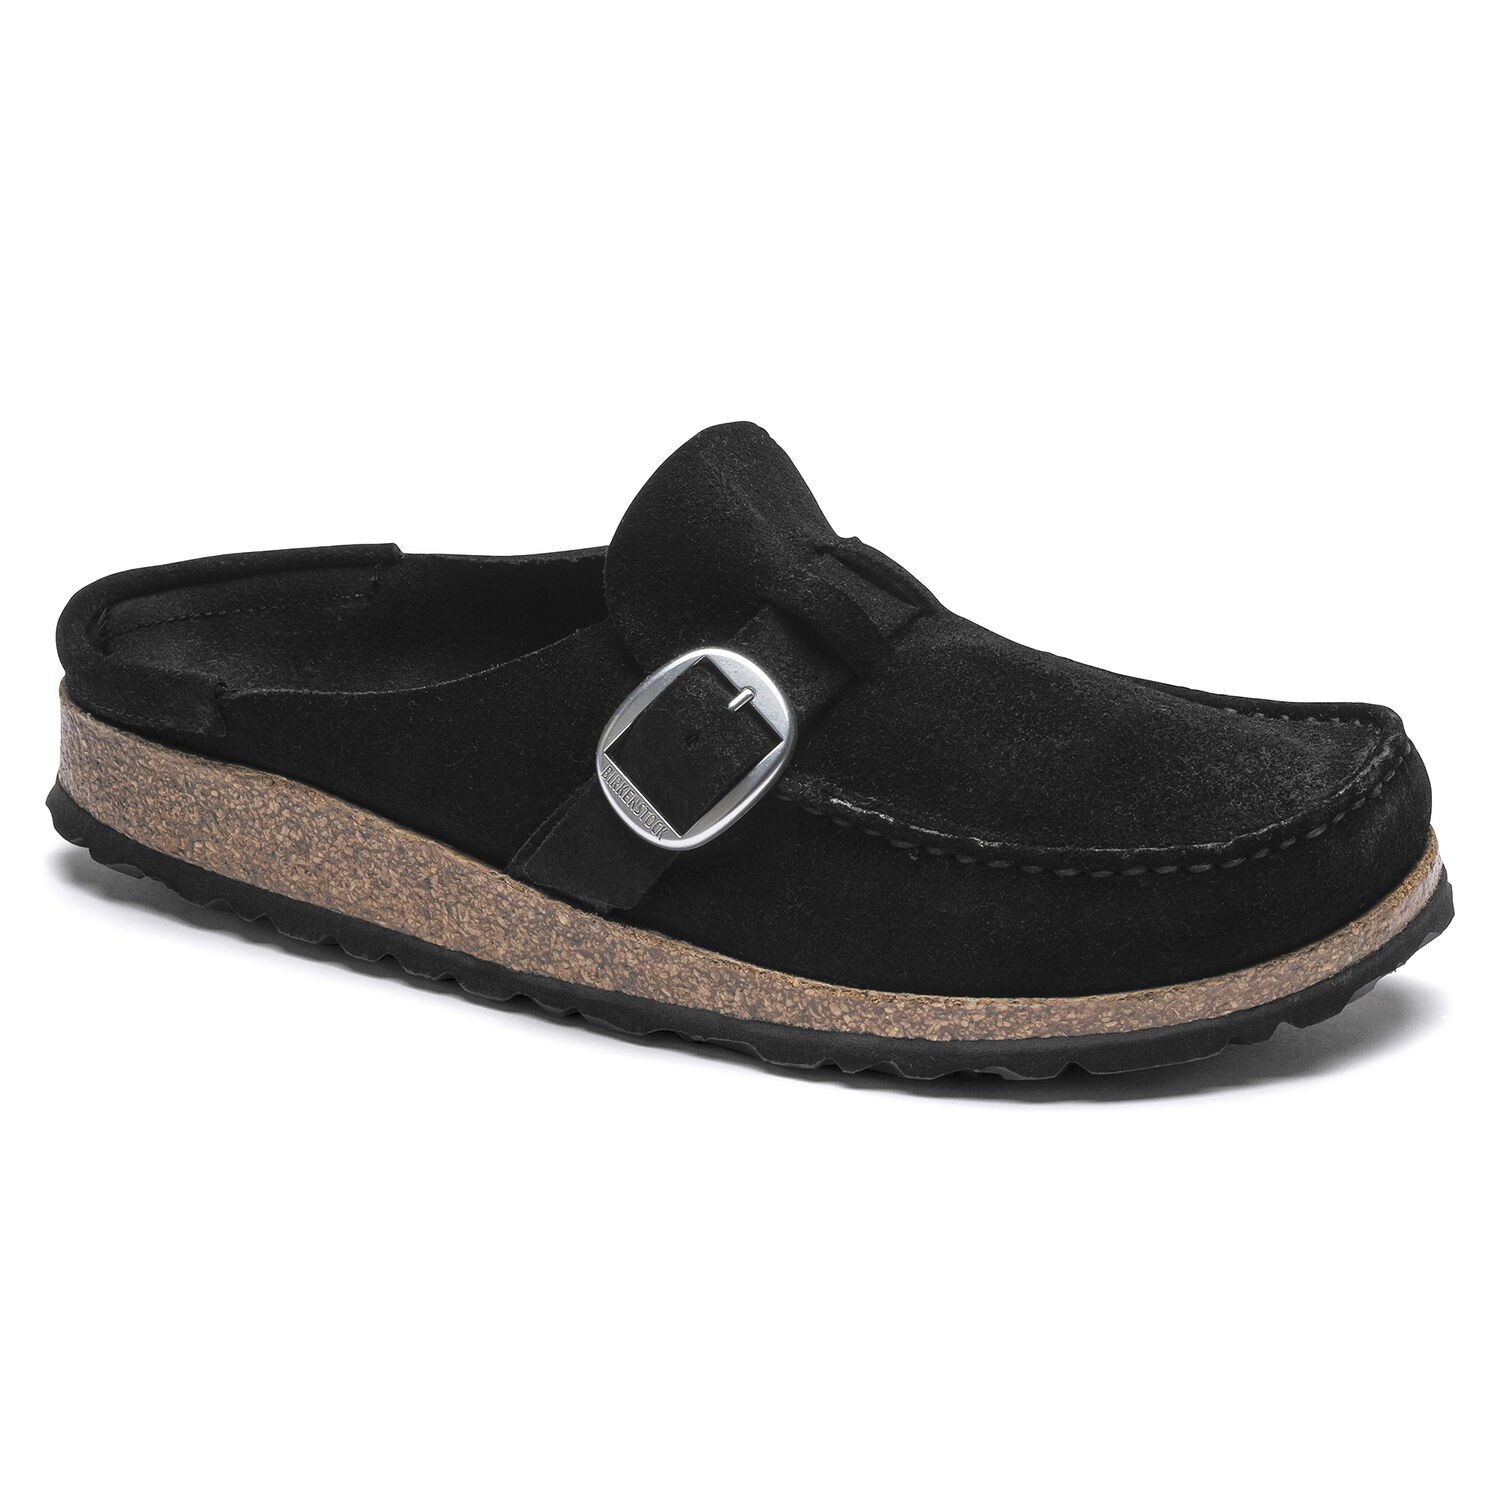 Birkenstock Buckley LEVE Black Narrow